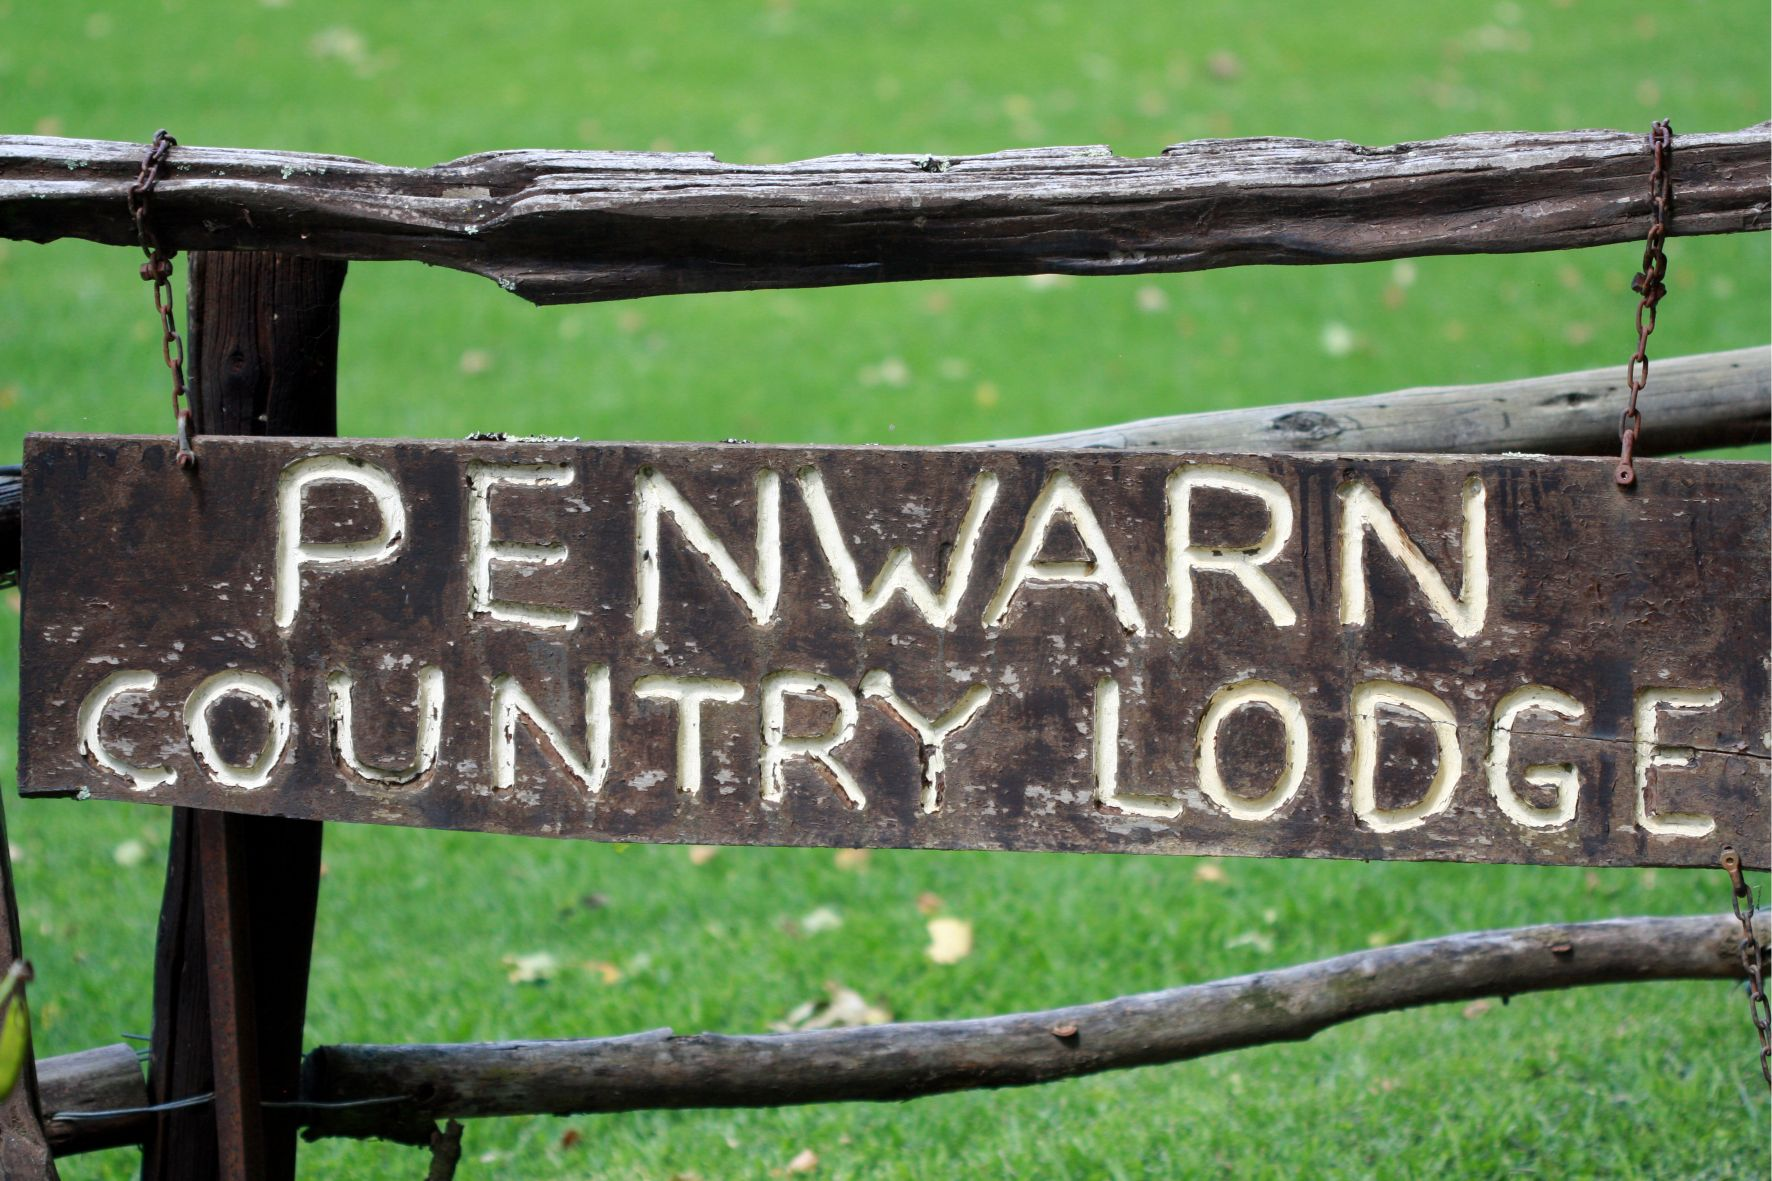 Penwarn Country Lodge from Sunrise to Sunset!